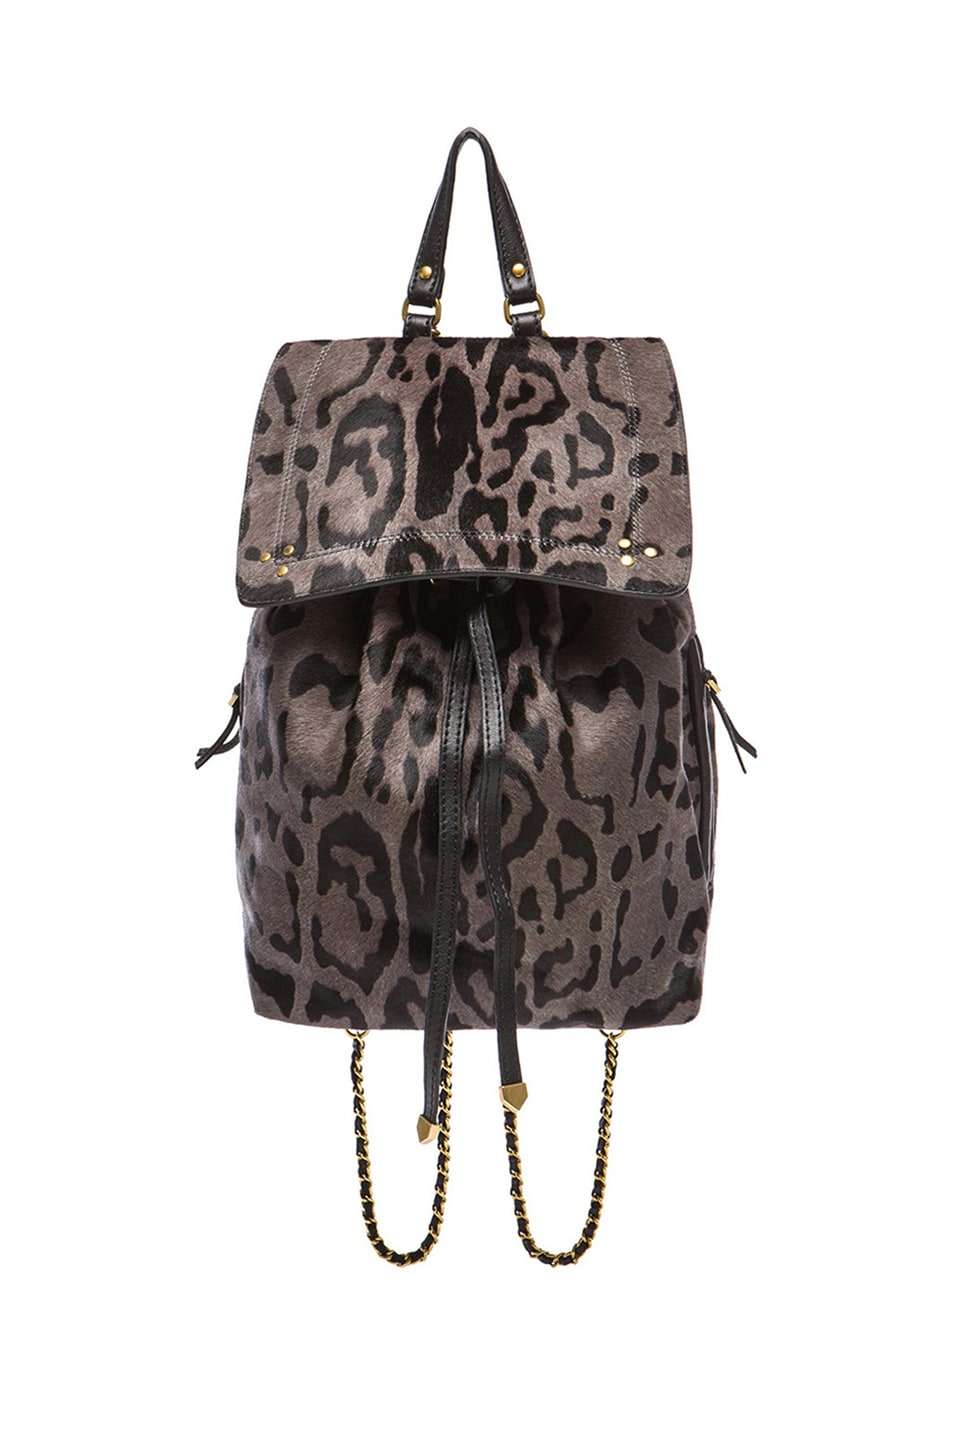 Image 1 of Jerome Dreyfuss Florent Backpack in Gris Leopard Pony